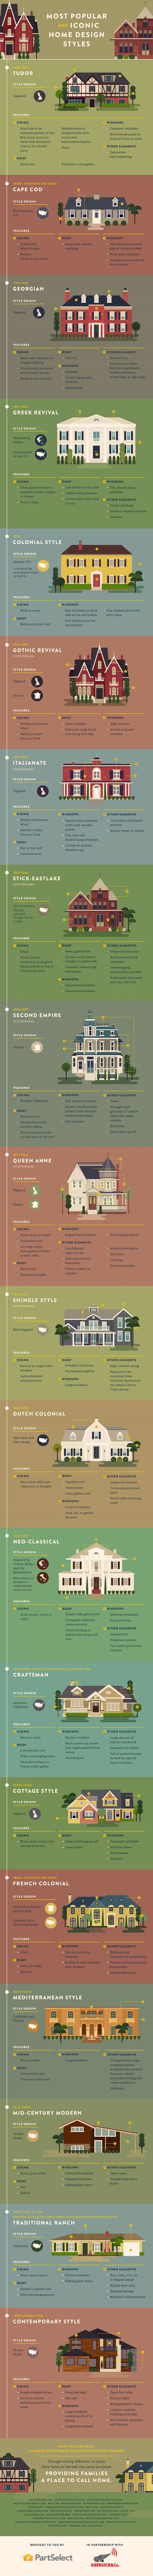 Do You Know the Most Popular Home Styles httprealtormag